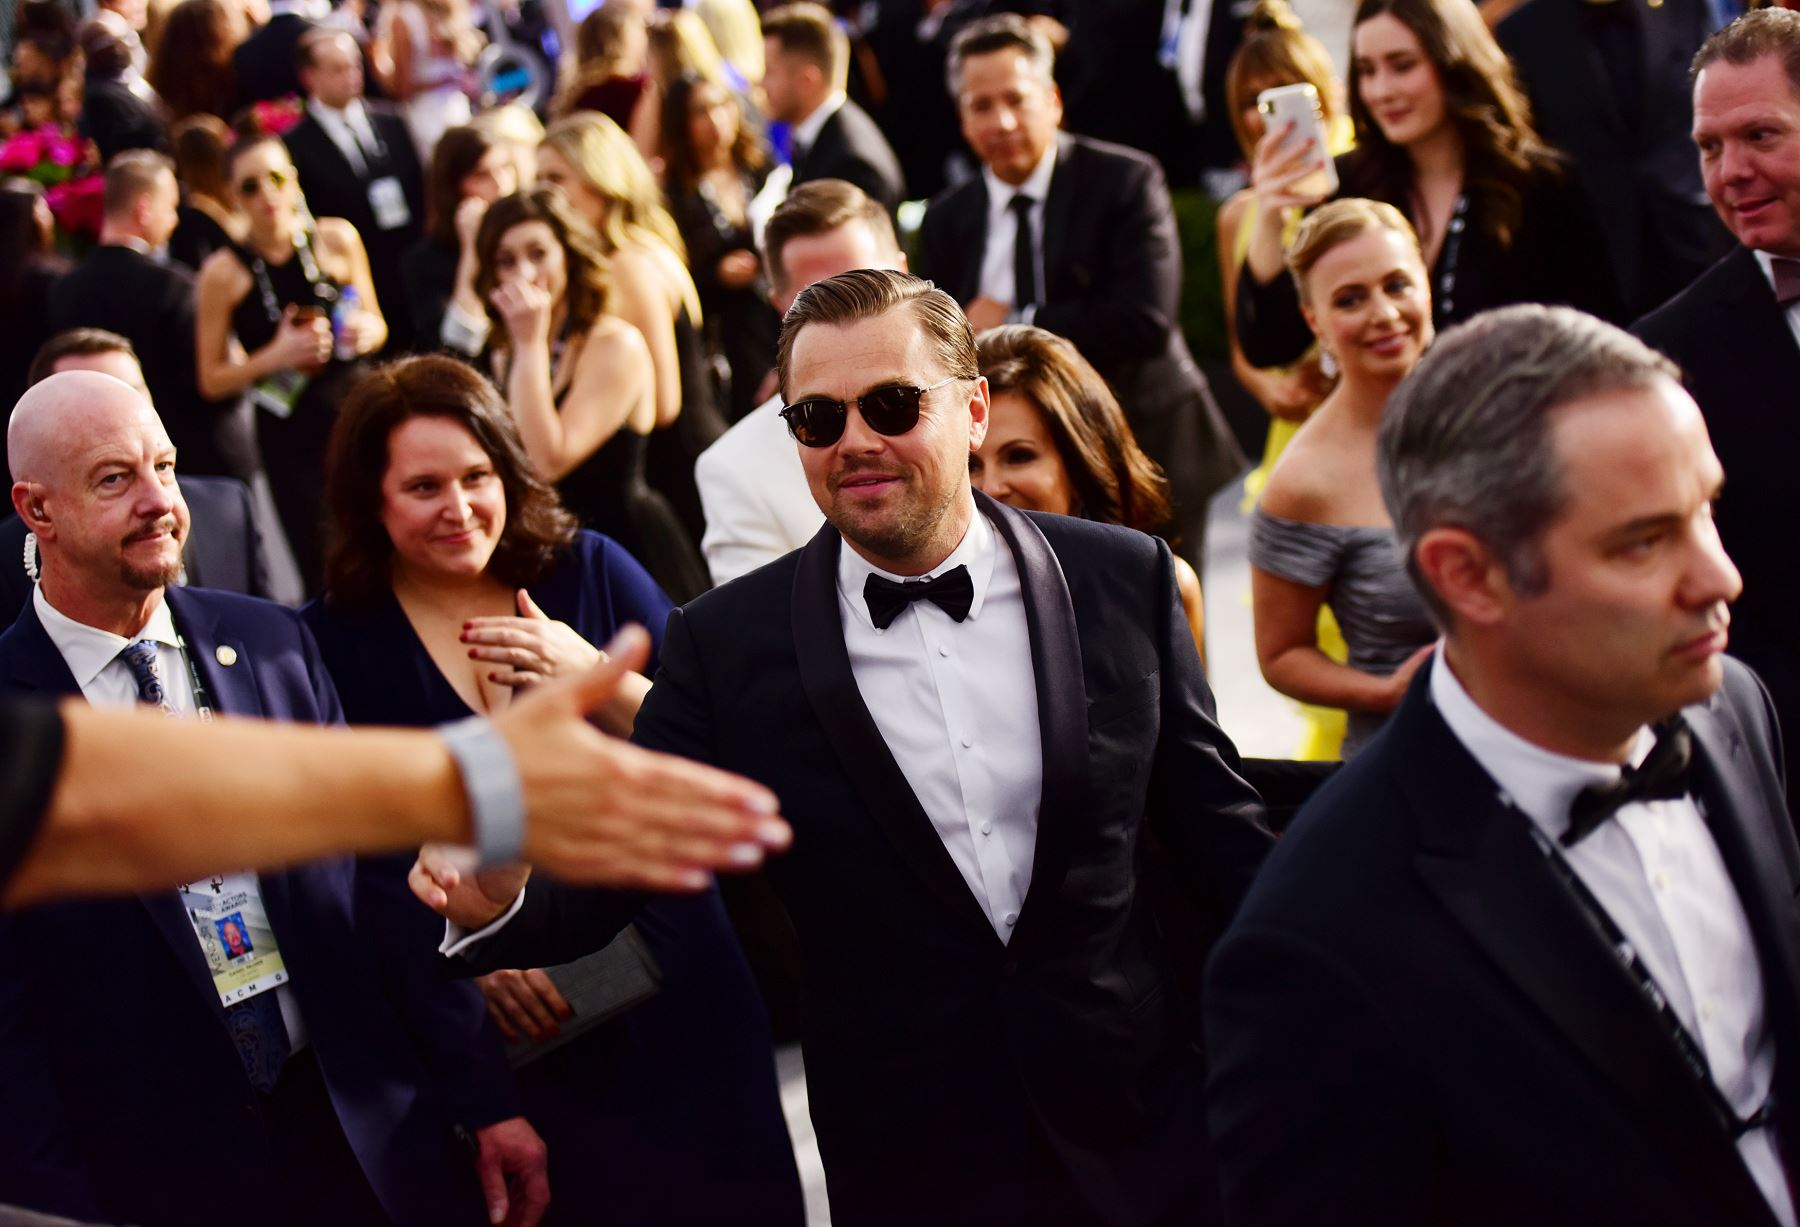 El actor Leonardo DiCaprio asiste a la 26a entrega anual de los premios Screen Actors Guild Awards en el Auditorio Shrine. AFP